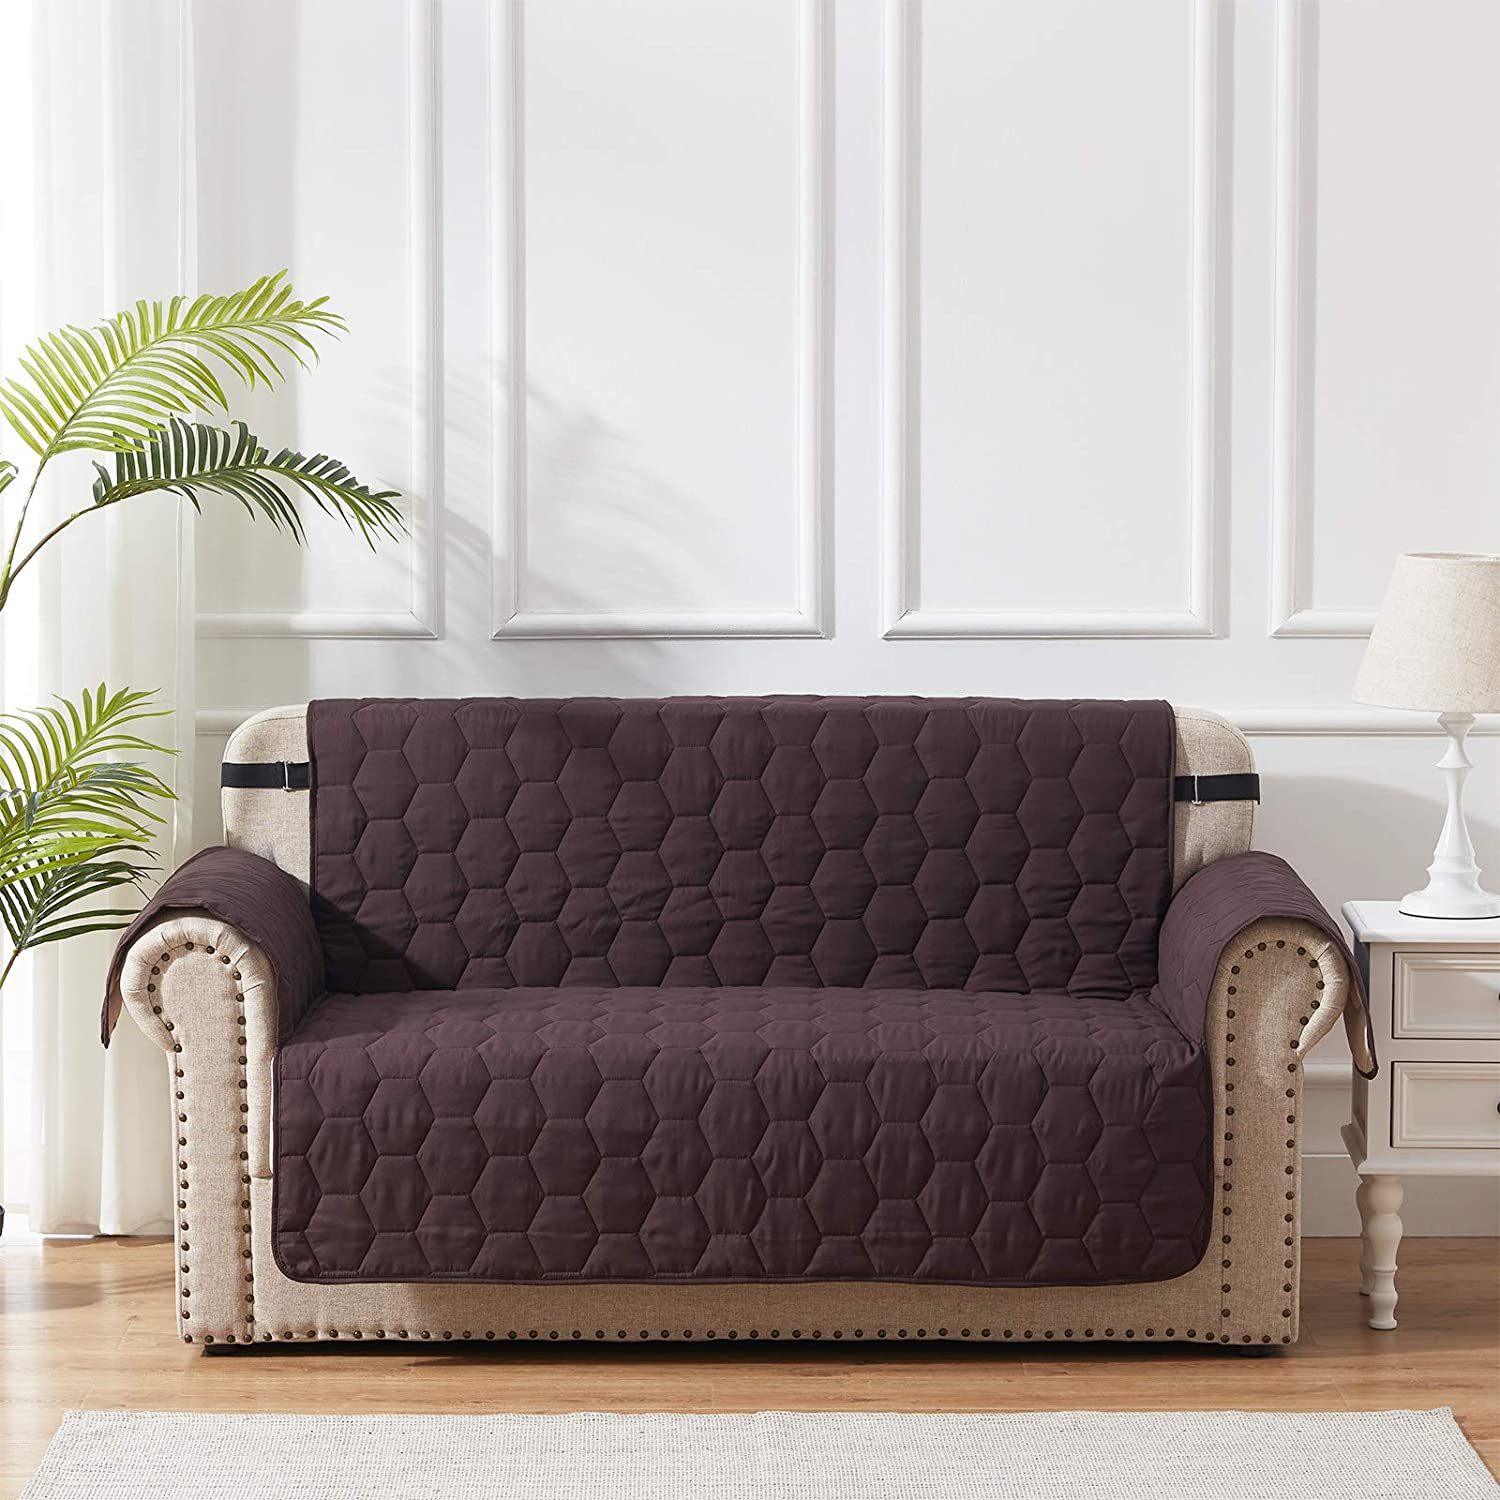 SunStyle Home Loveseat Slipcover Furniture Protector 100% Waterproof Honeycomb Quilted Loveseat Couch Cover with Adjustable Elastic Strap and Non-Slip Backing - Chocolate/Beige